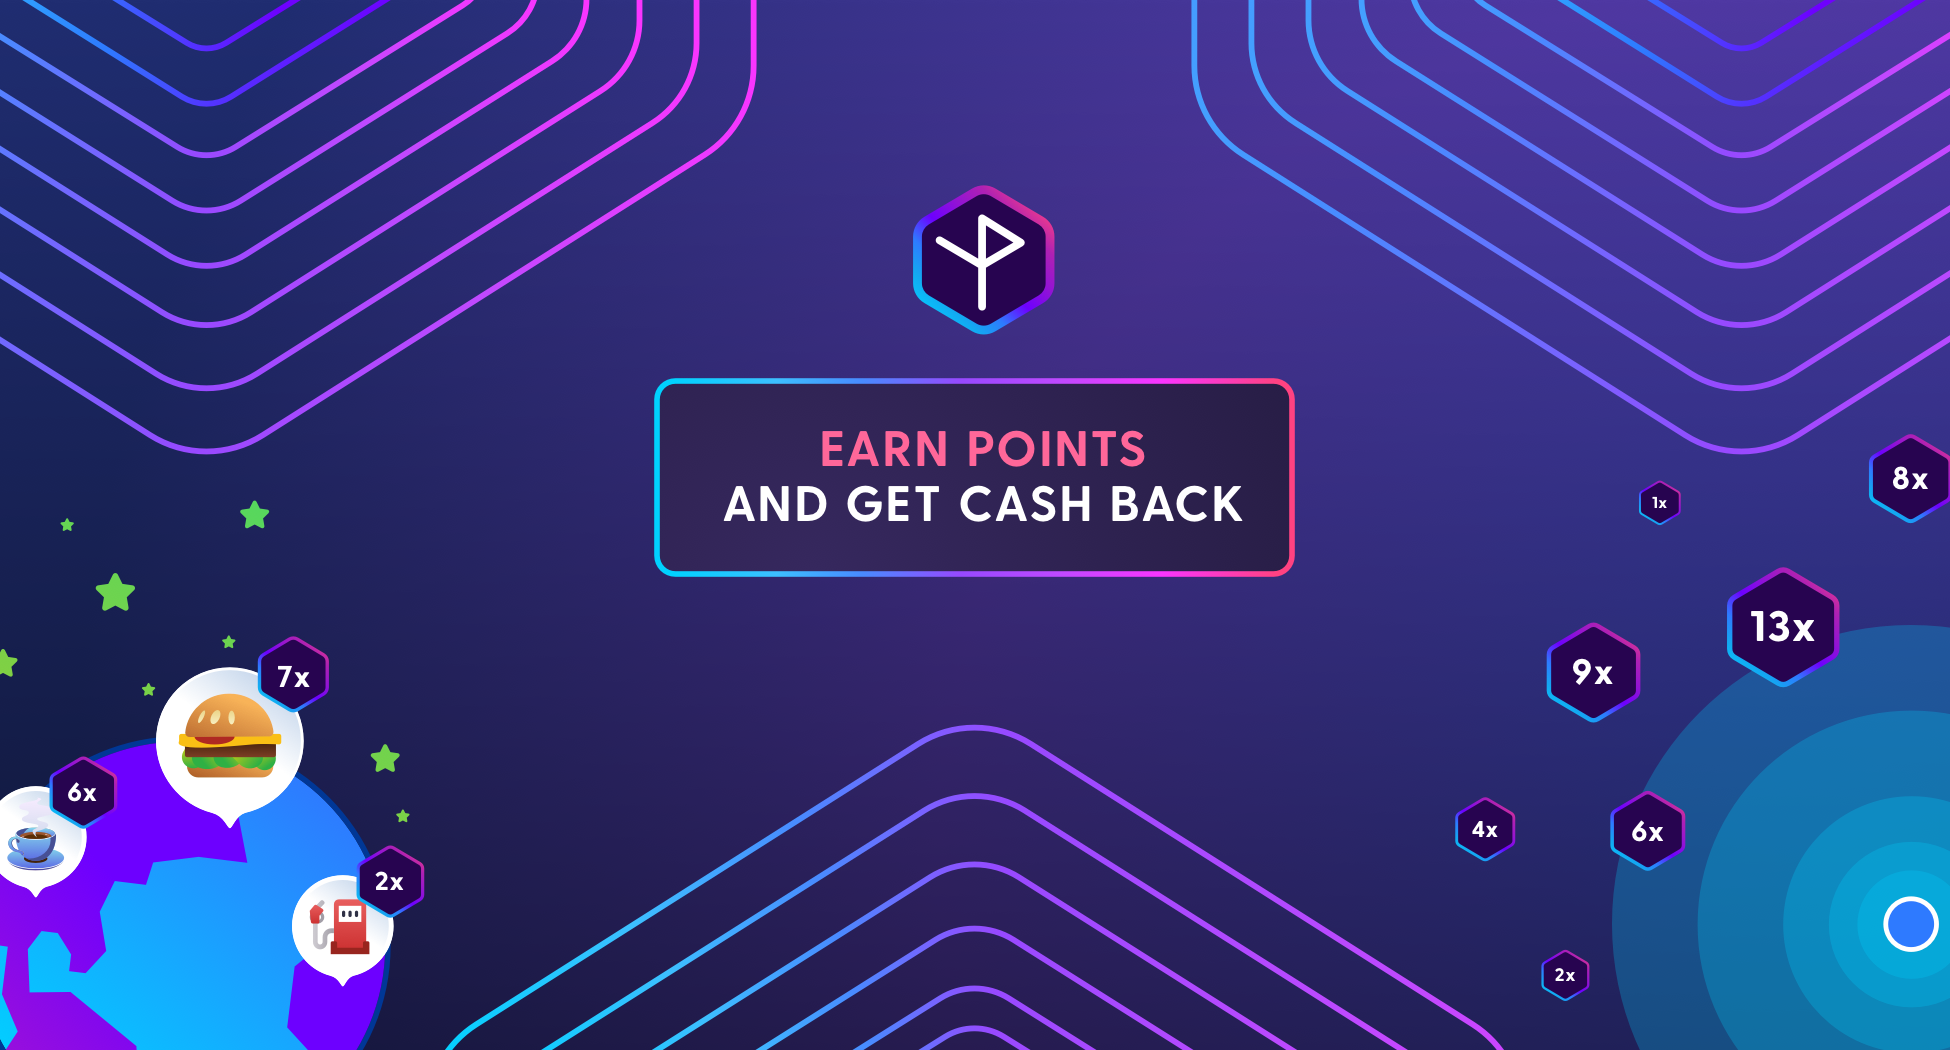 current-becomes-first-fintech-to-launch-points-rewards